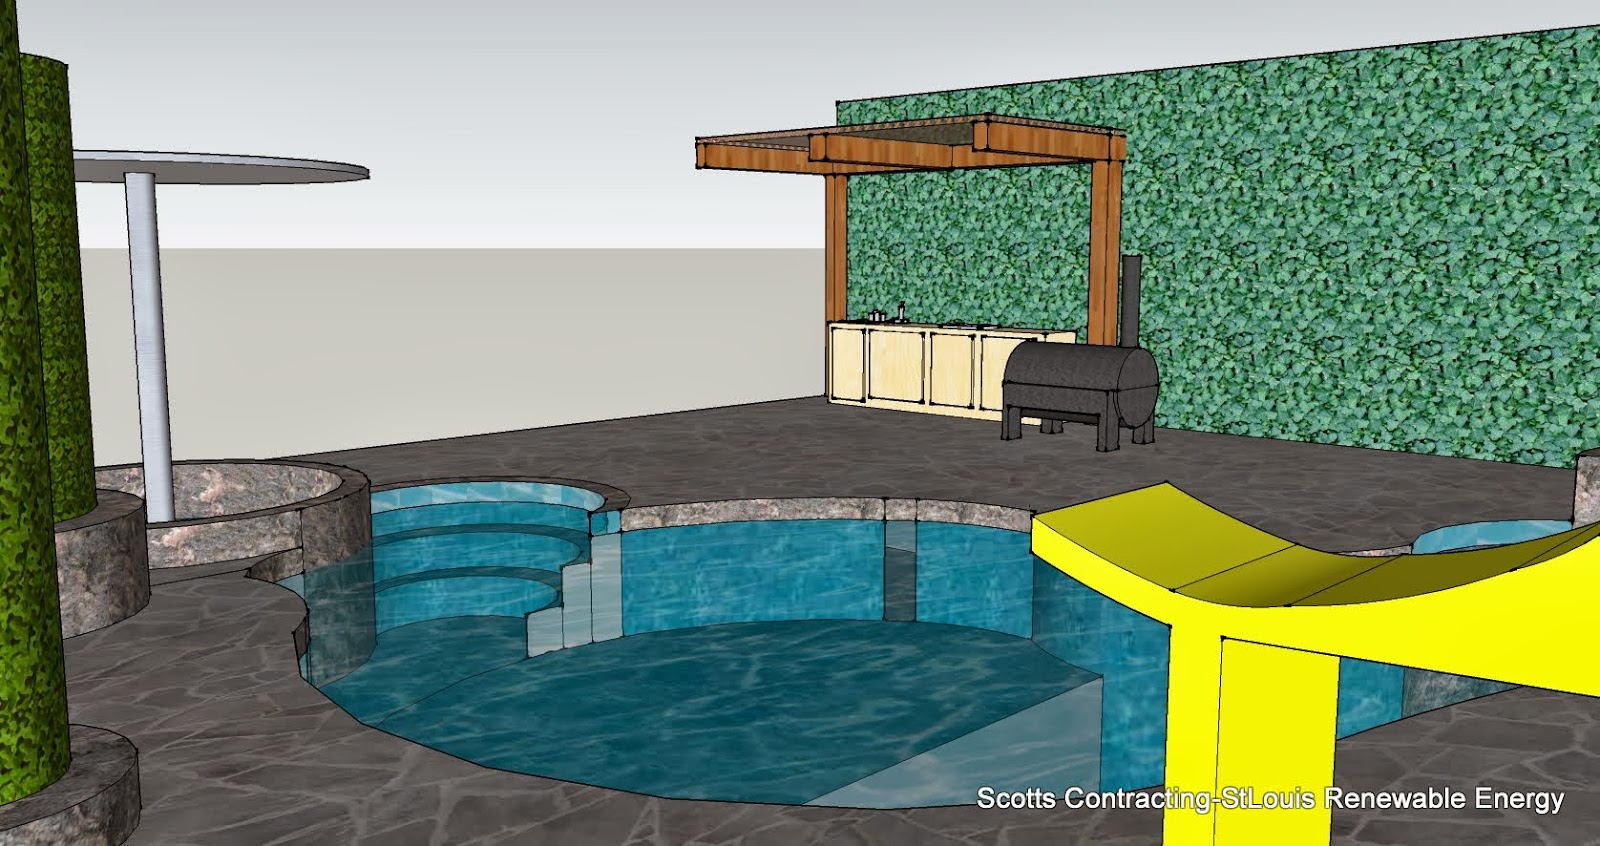 Eco friendly pool designs solar heating and bio filter interior - Eco Friendly Pool Designs Solar Heating And Bio Filter Interior 46